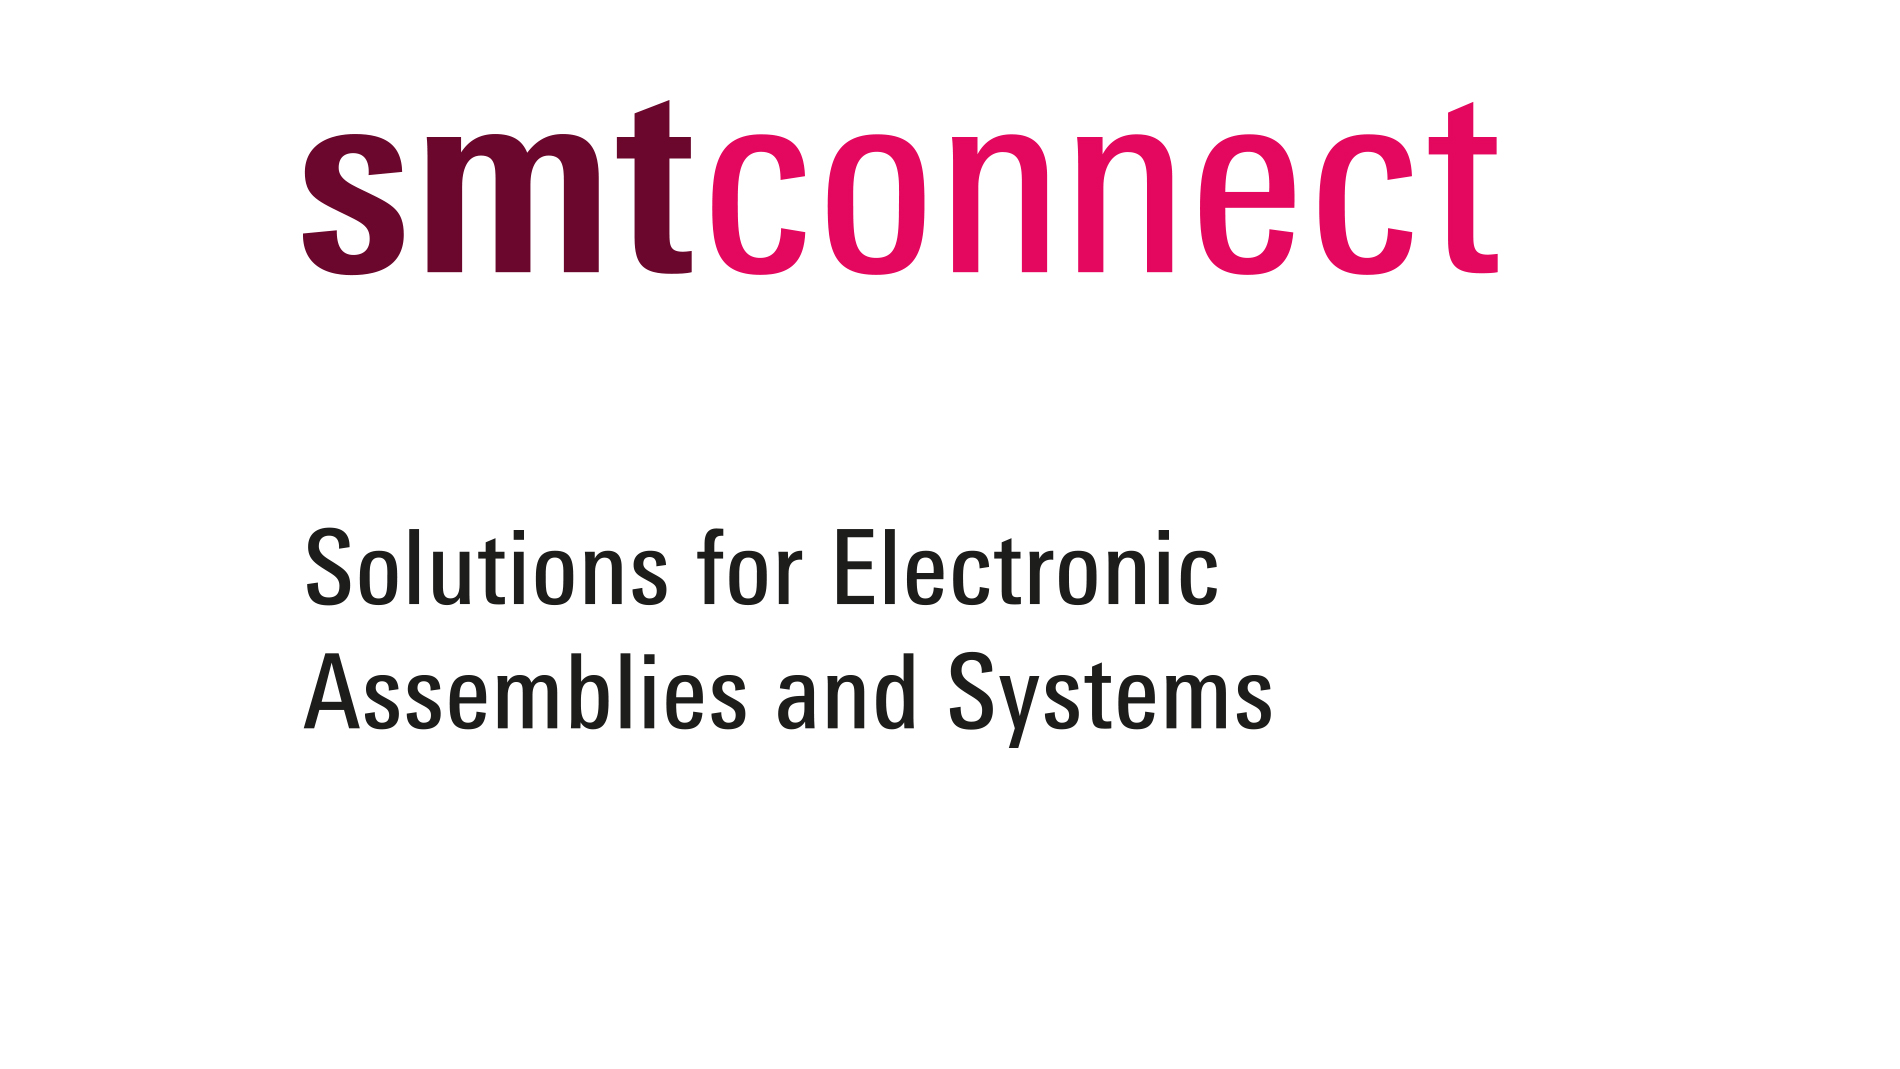 SMTconnect 2020 logo package short version, coloured